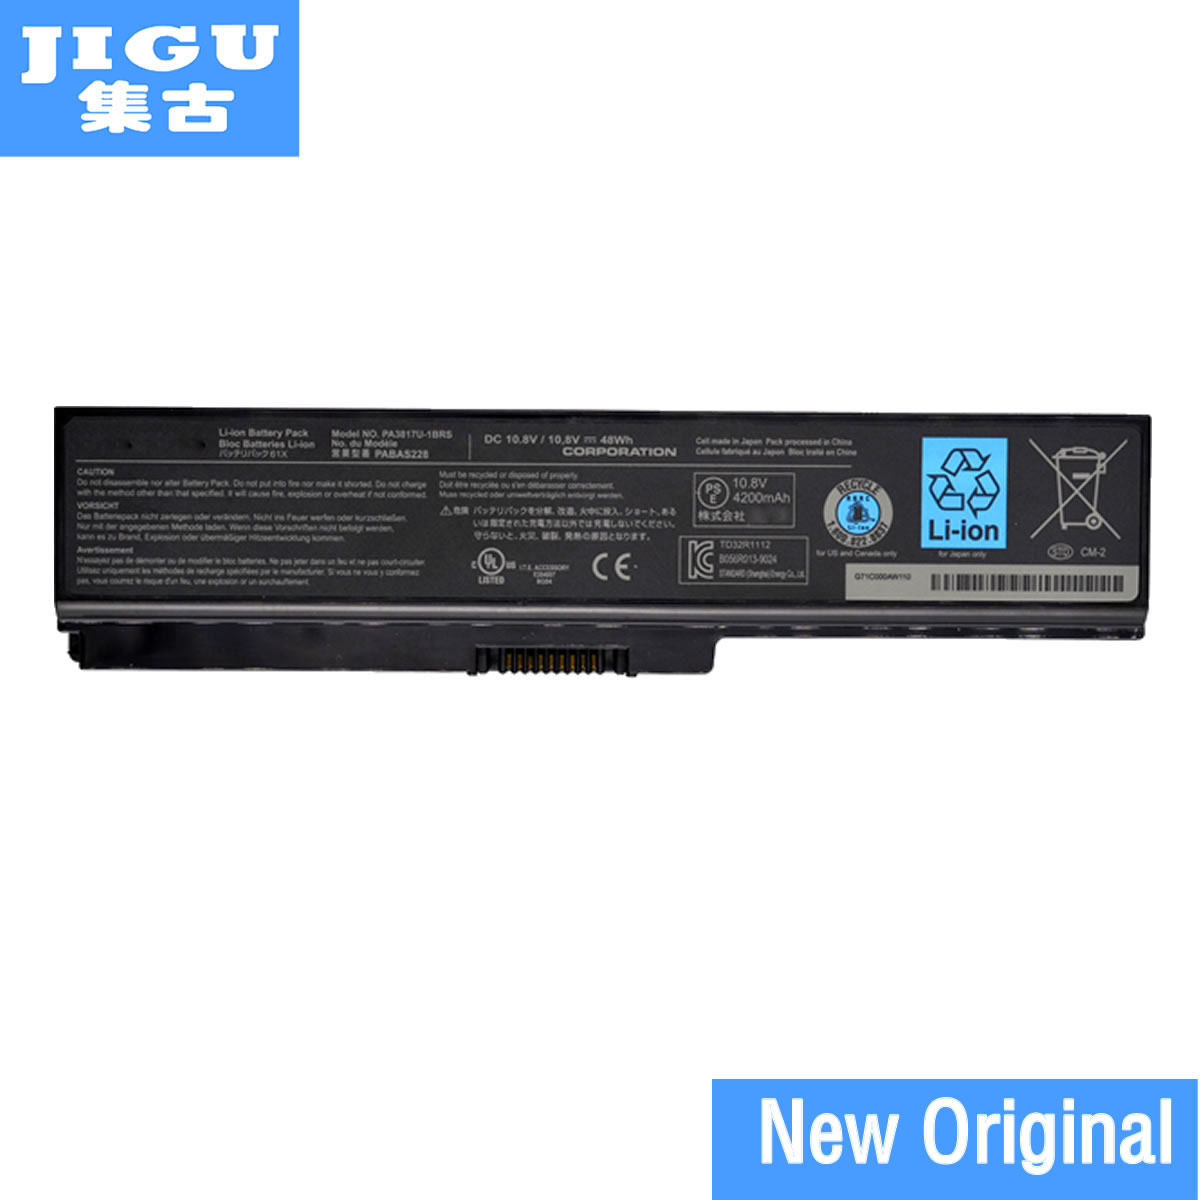 все цены на JIGU Original Battery For Toshiba PA3817U-1BRS PA3817 PA3818U-1BRS PA3817U For Satellite L745 L740 L655 L750 L750D L755 L630 онлайн